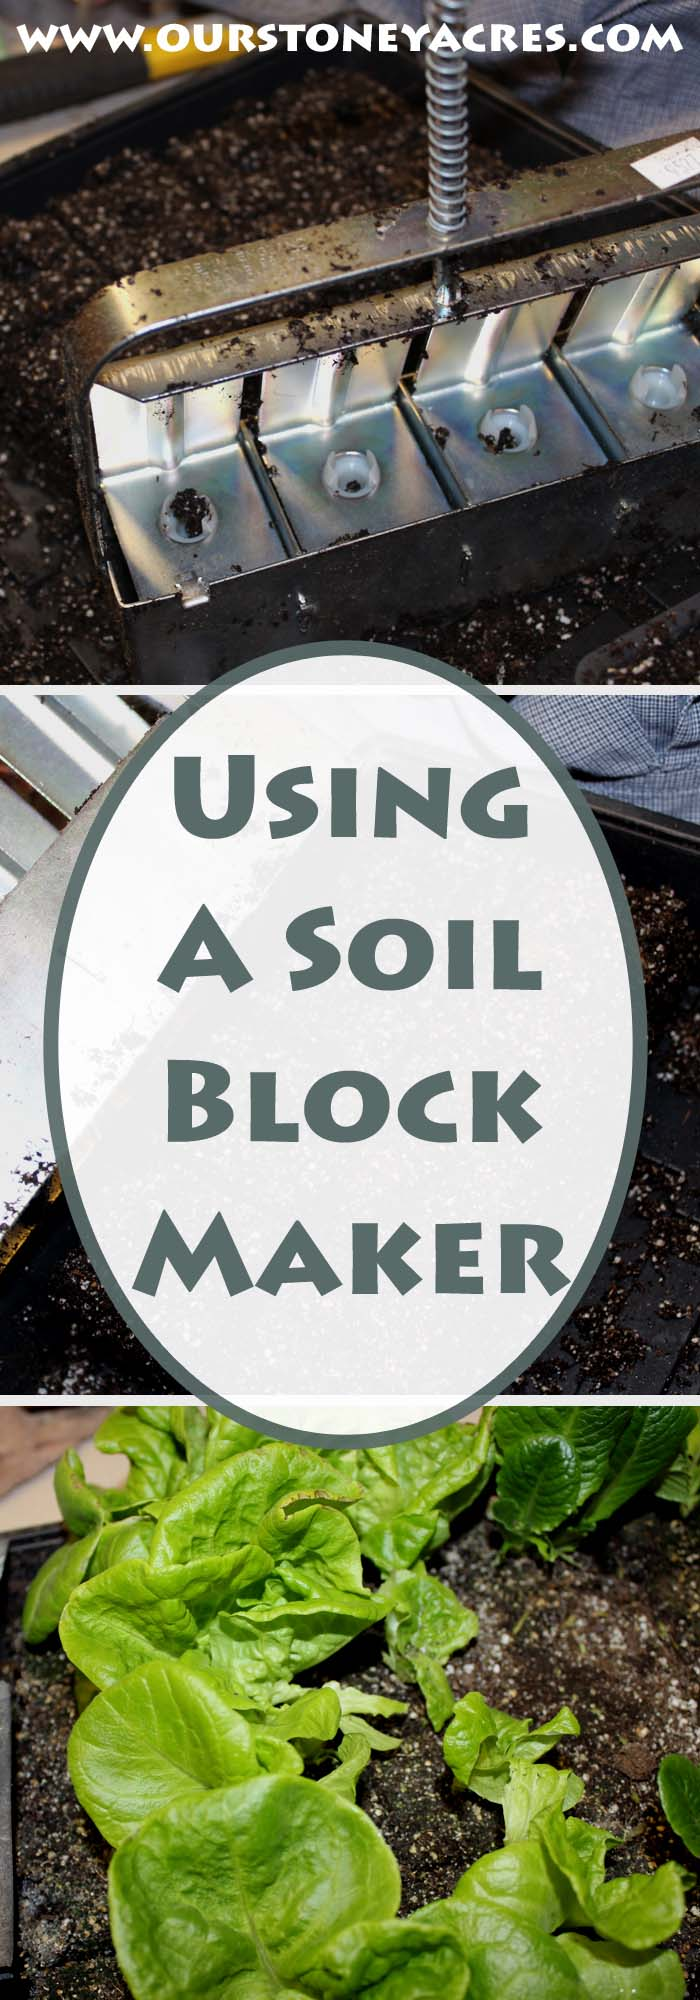 Using a Soil Block Maker